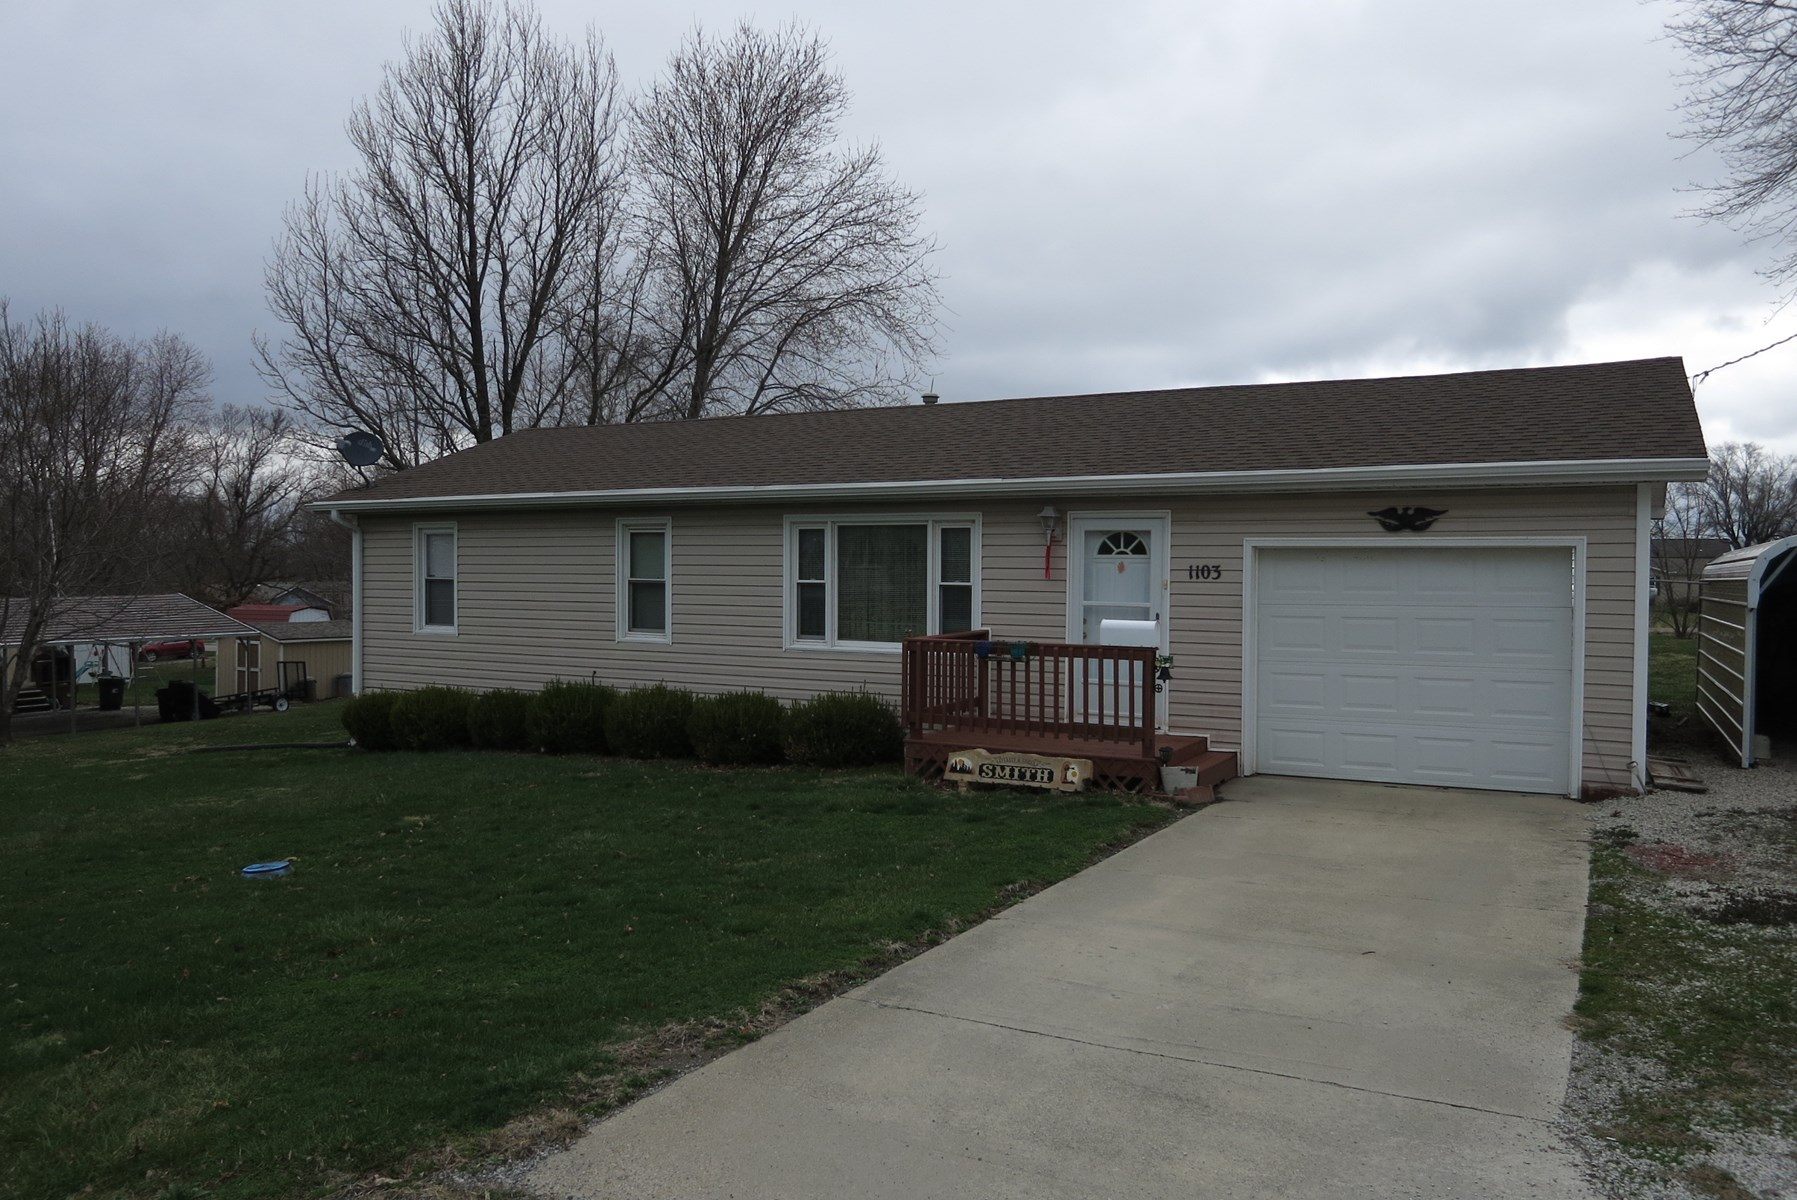 For Sale Ranch Home in Bethany MO